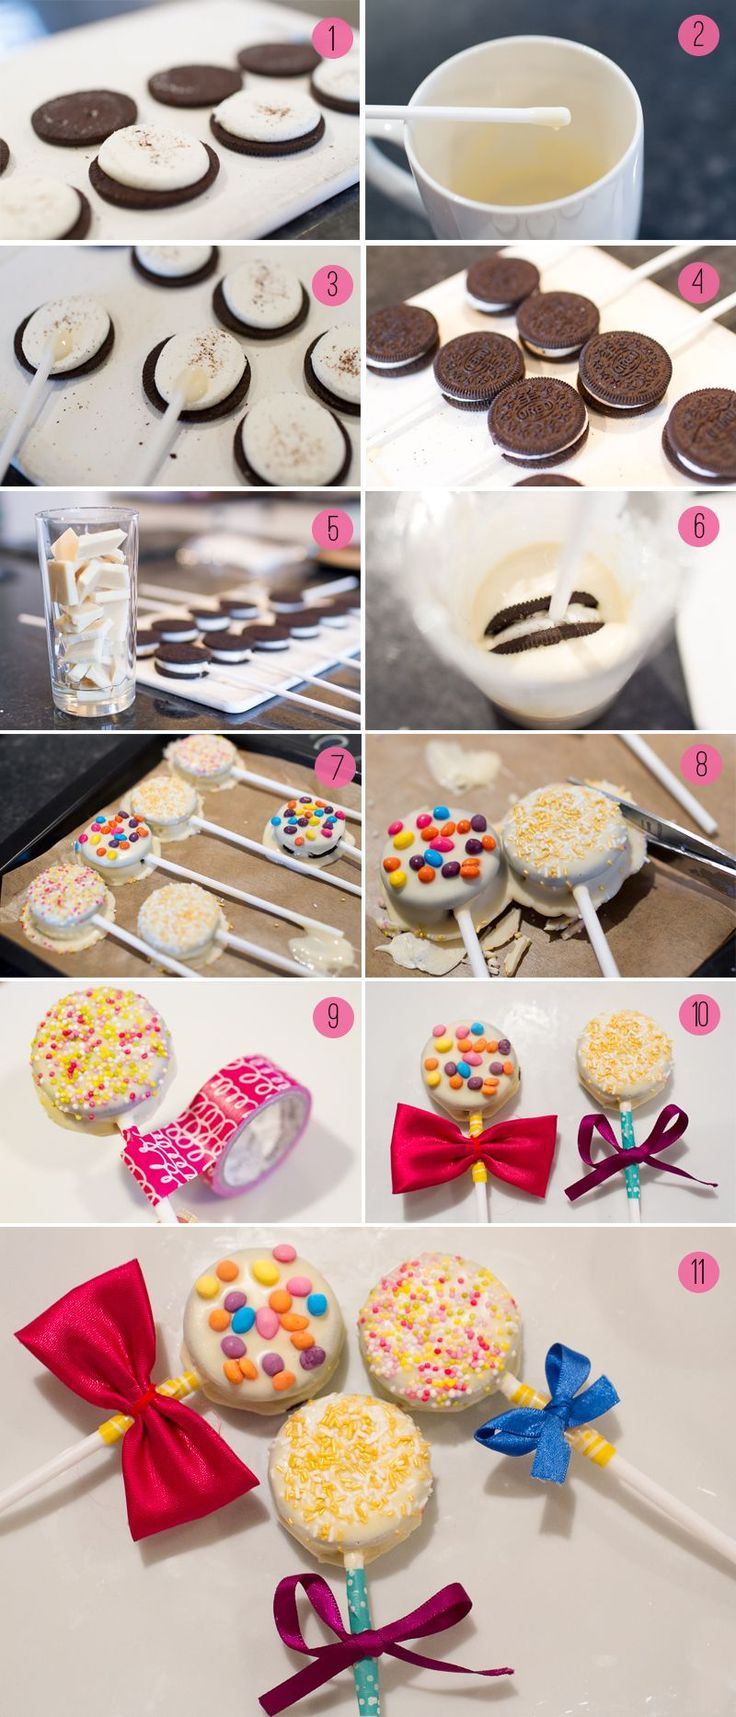 How To Make Oreo Pops - easily done and with Chocolate or Golden Vanilla Oreos.